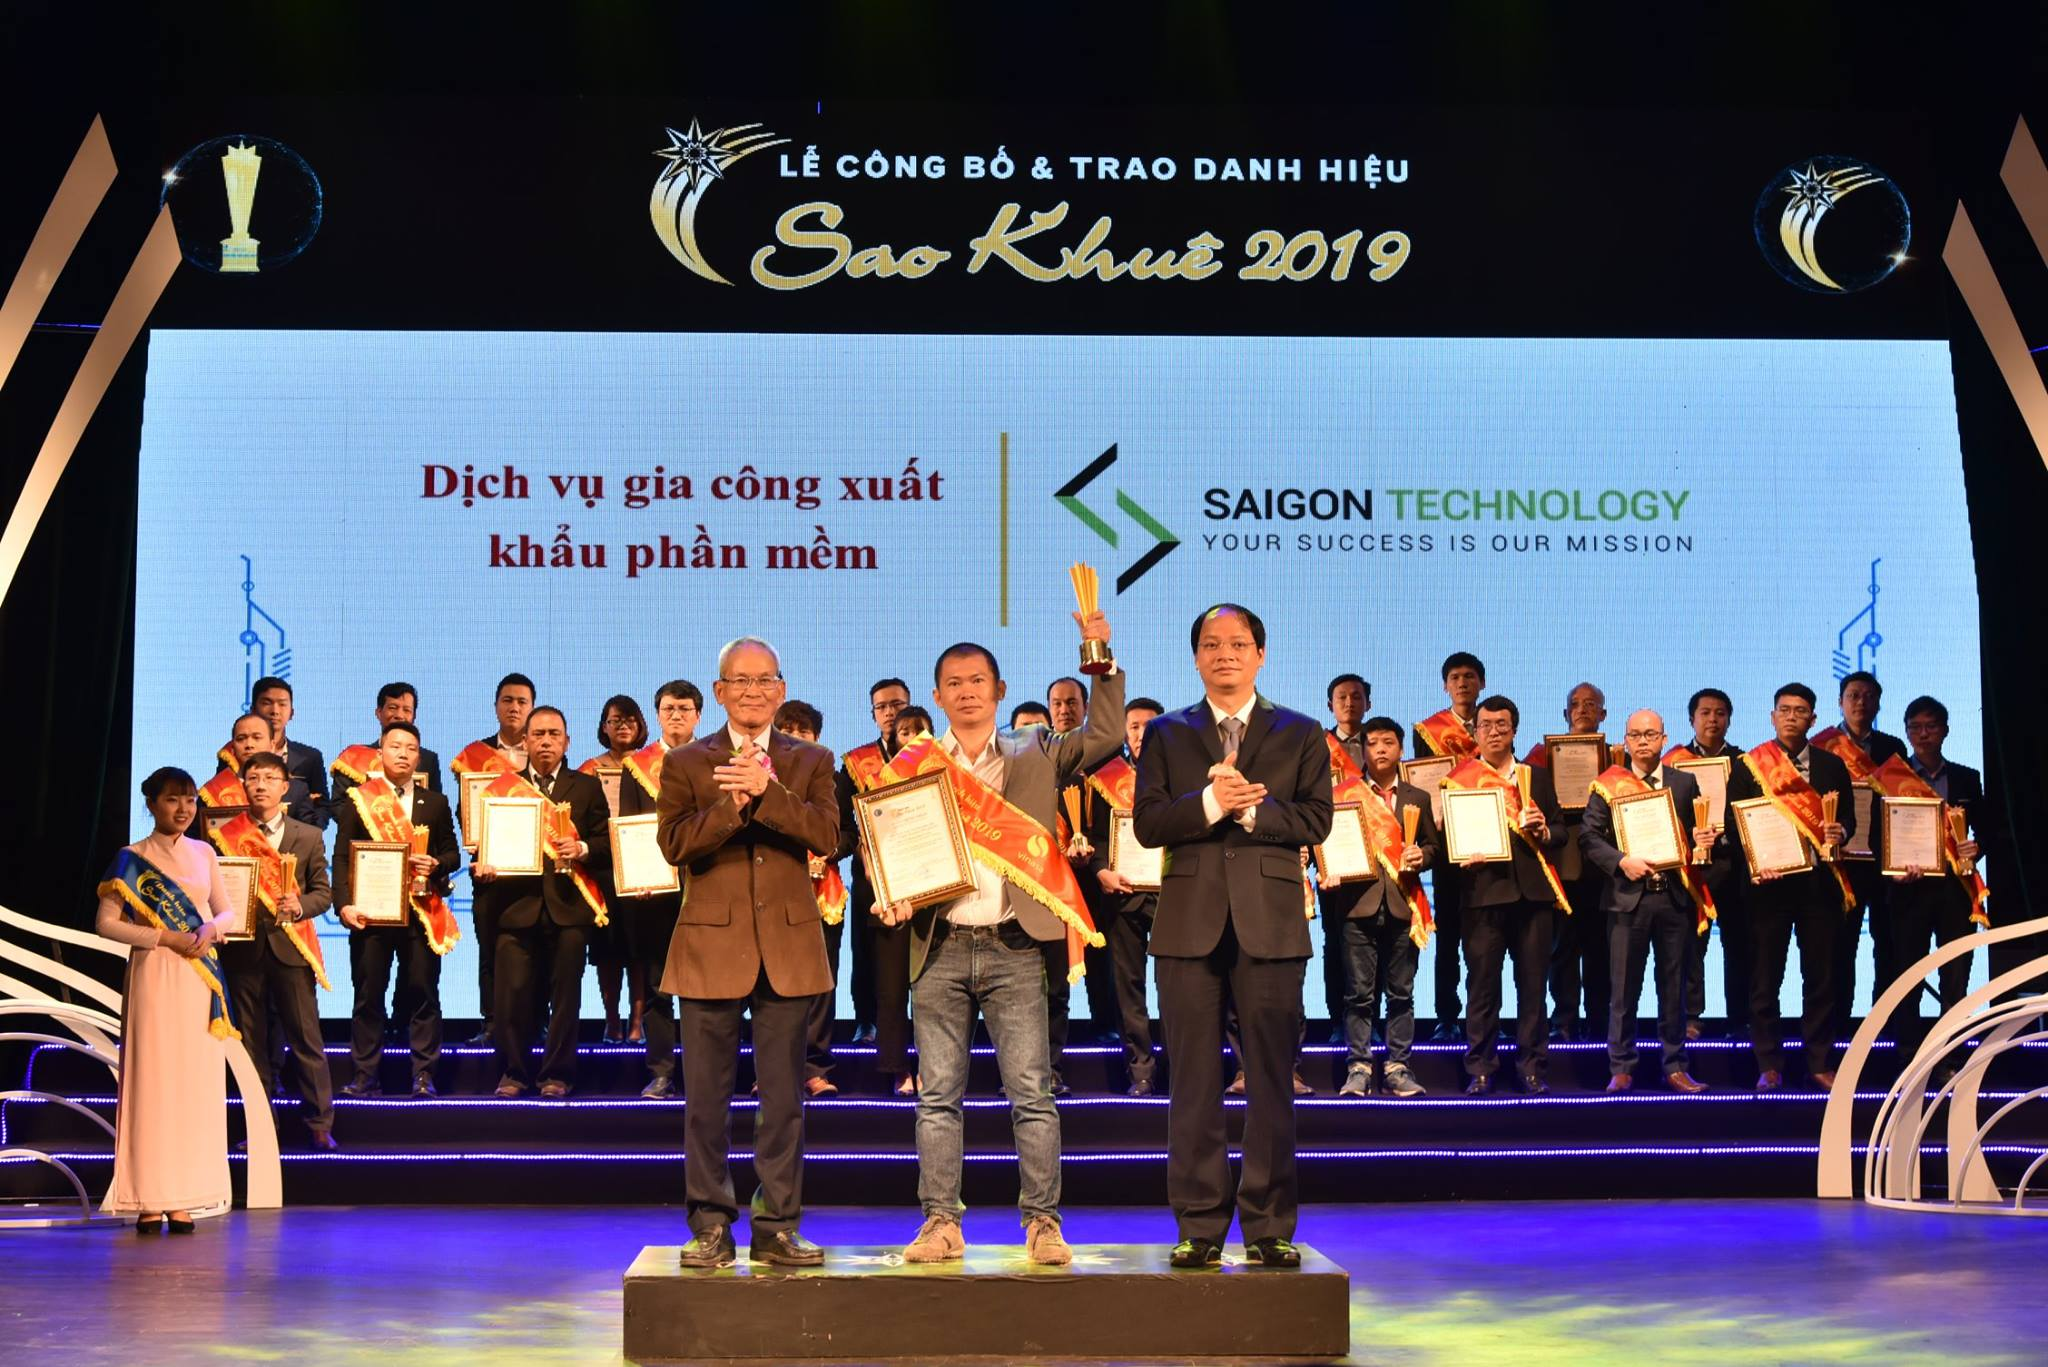 sao-khue-award-for-saigon-technology-solution.jpg